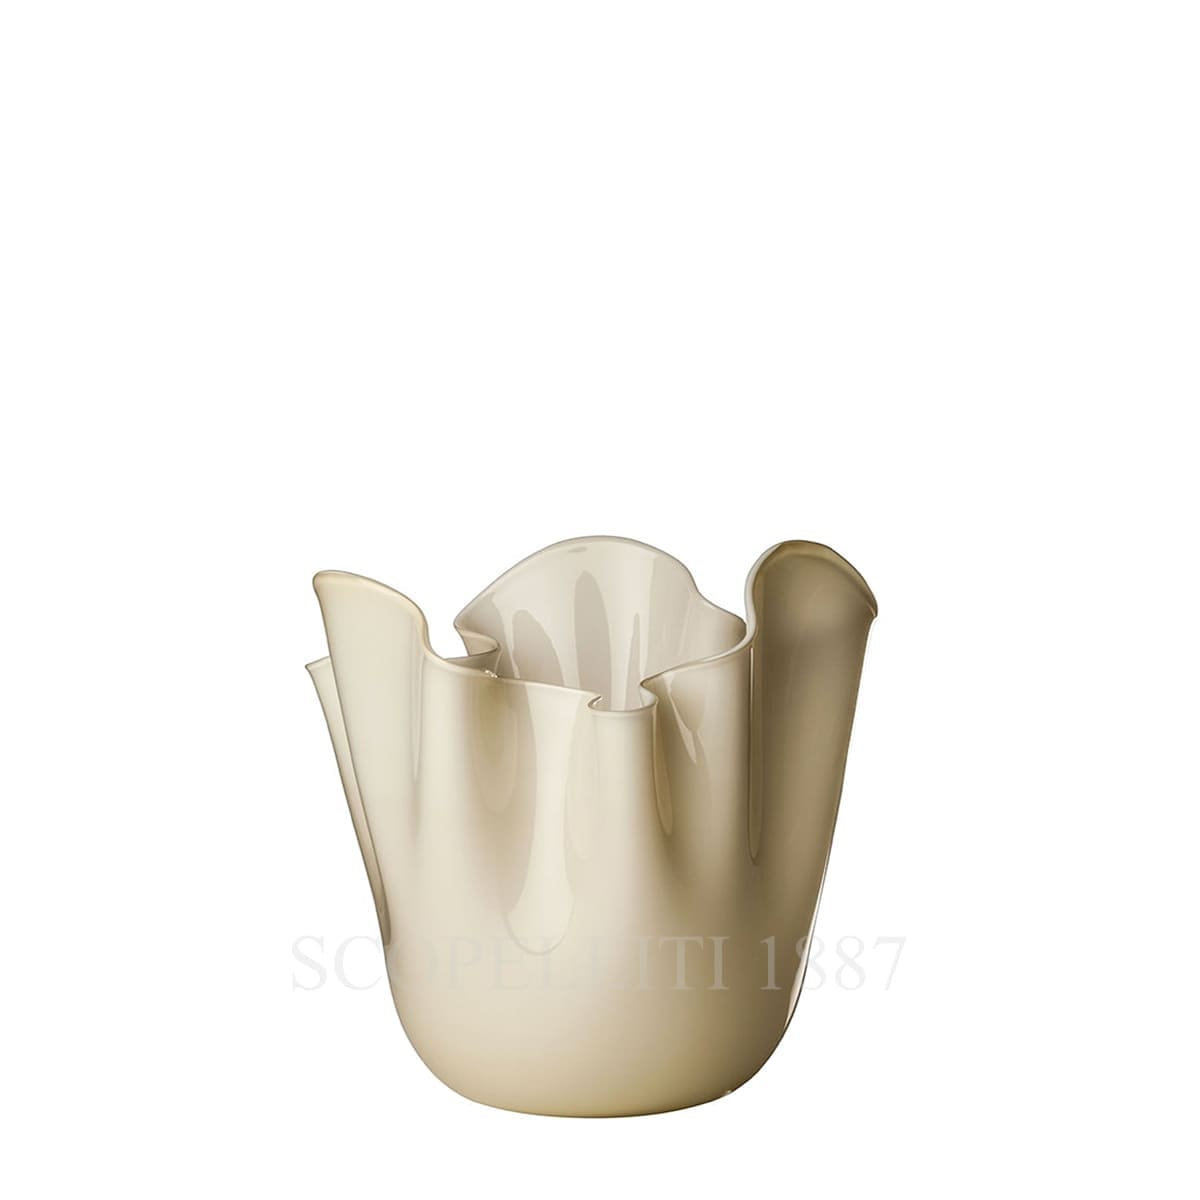 Venini Fazzoletto Vase small straw yellow 700.04